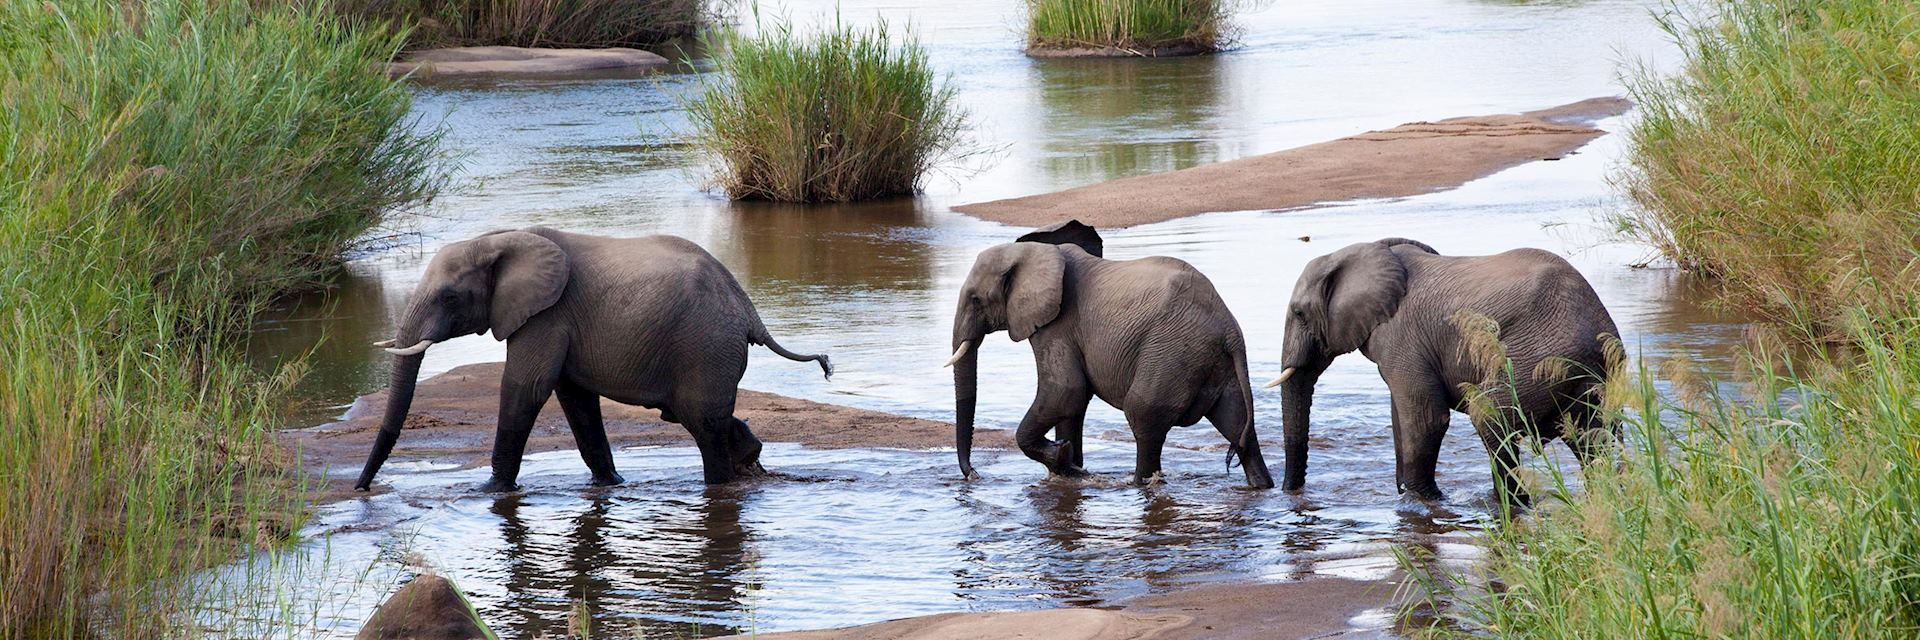 Elephants crossing a river, Kenya